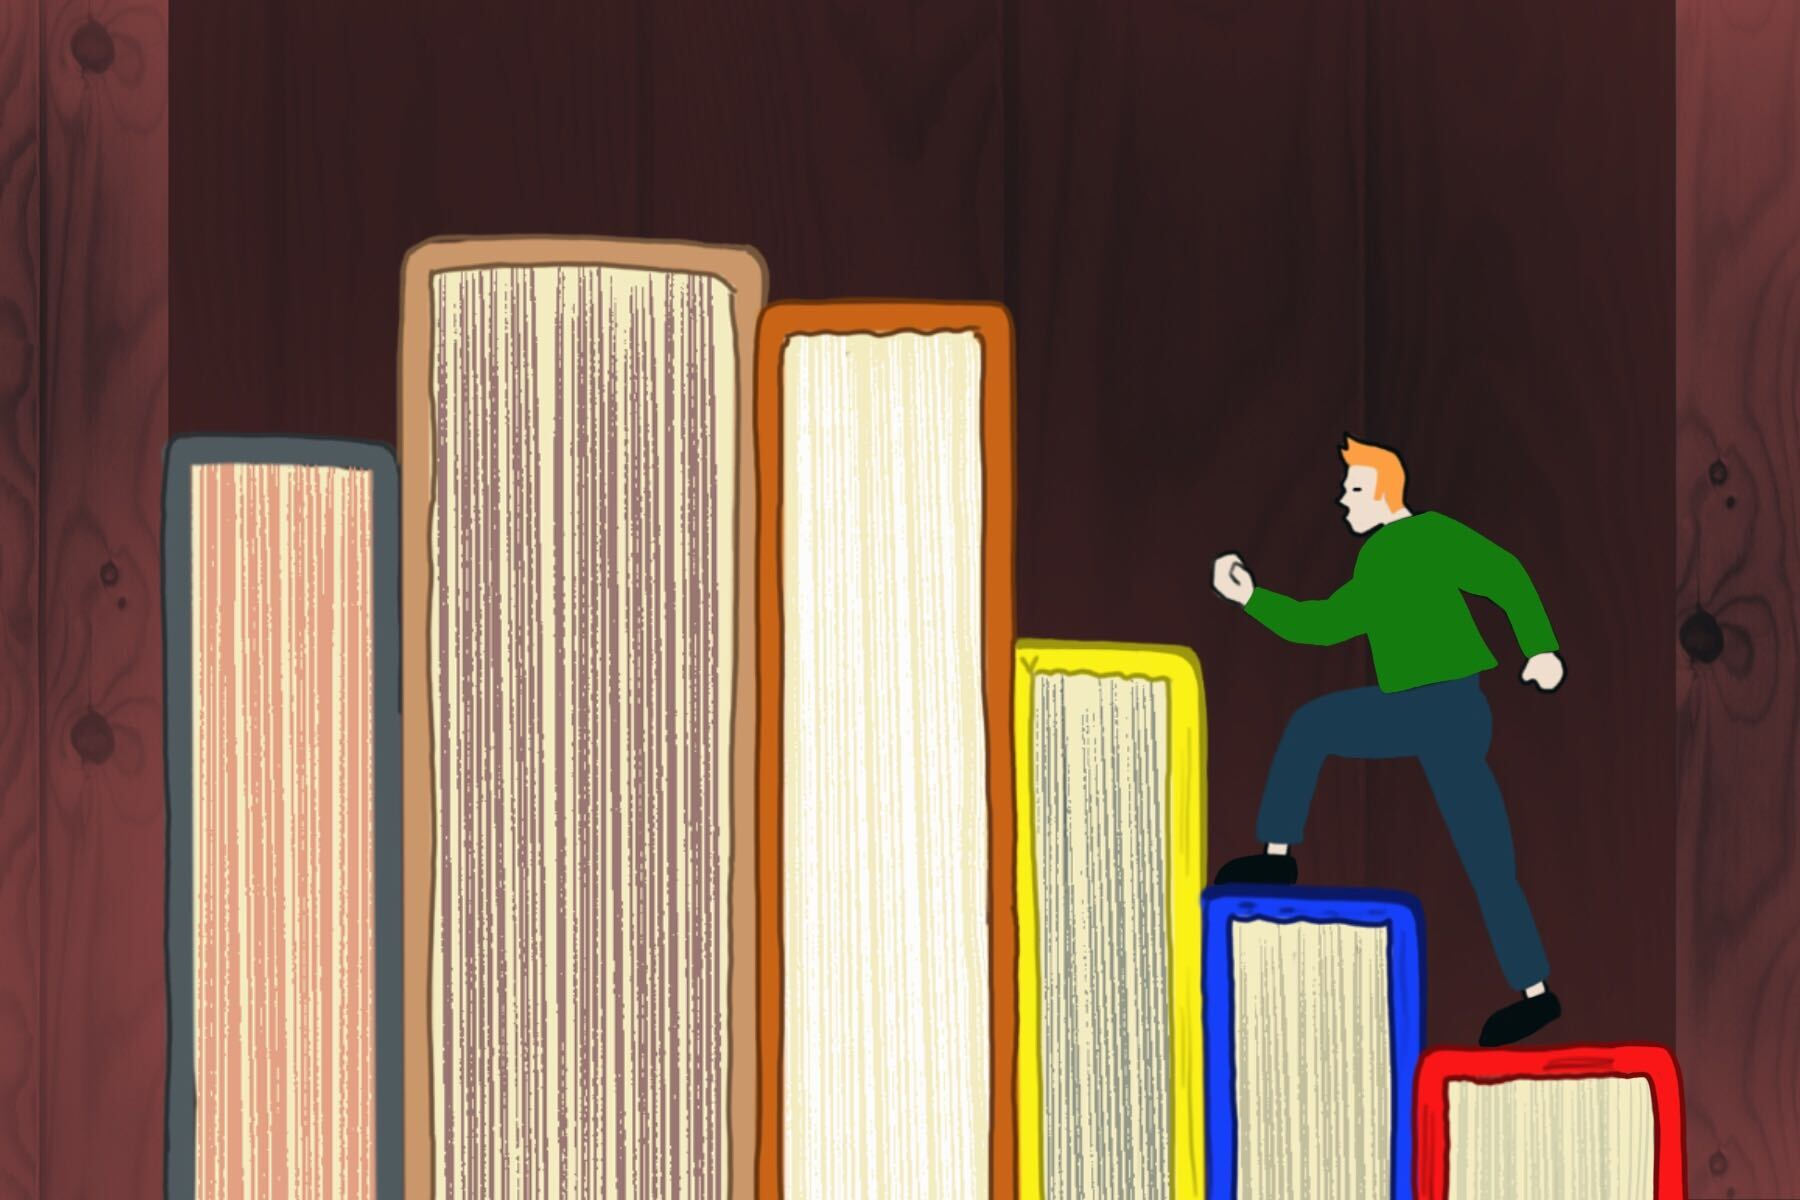 In an article about short stories, a person walking up a set of stairs made of books